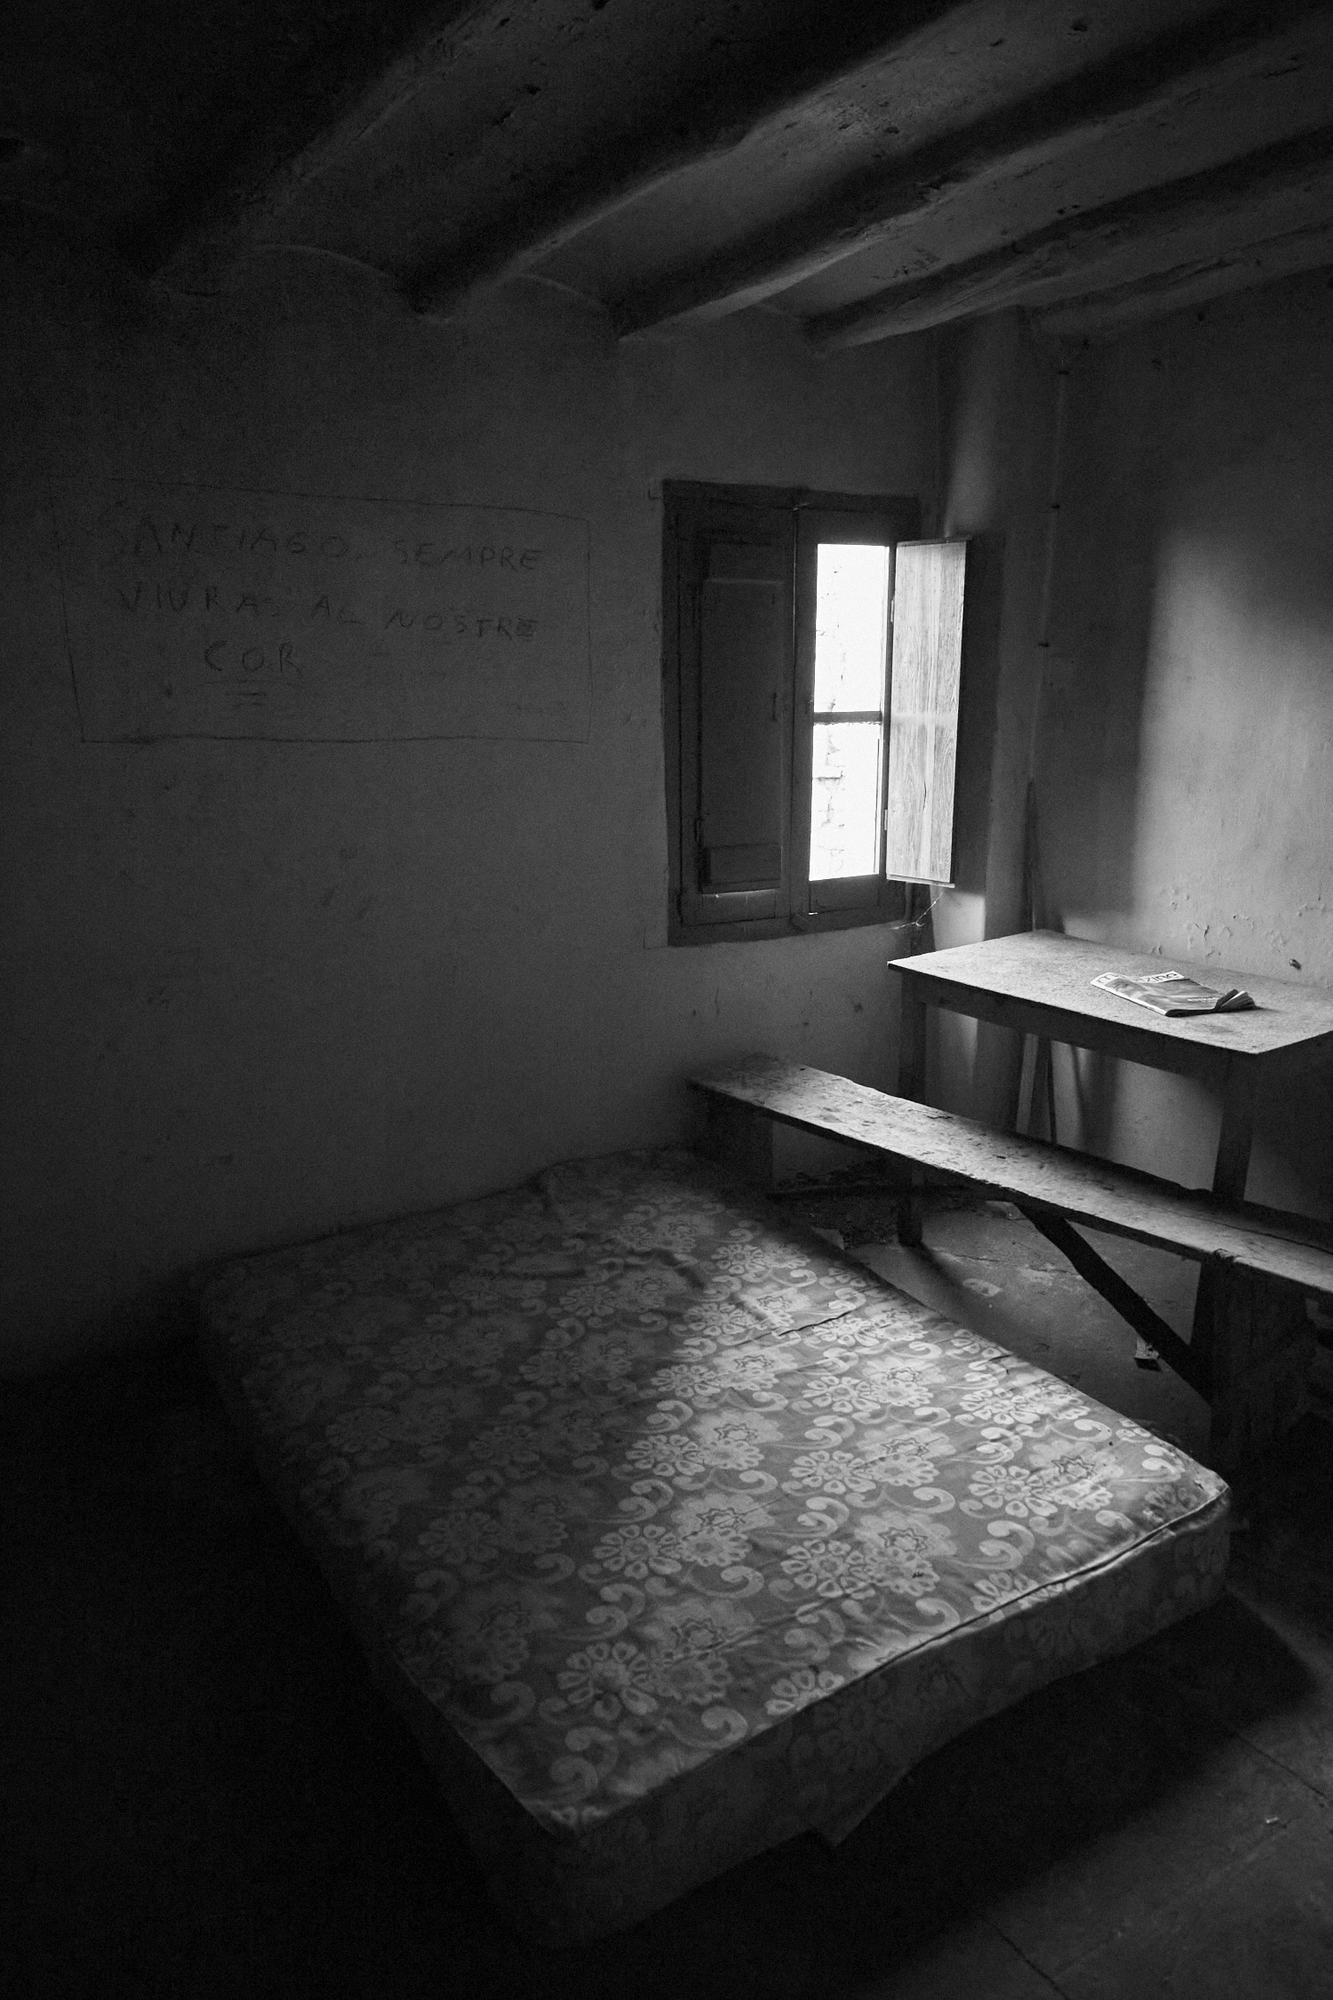 In a old room with a window open there is a mattress in the floor, a seat and a table with a magazine on it. A painting in the wall can be read, Santiago sempre viura al nostre cor. Black and white photography. Nostalgic.